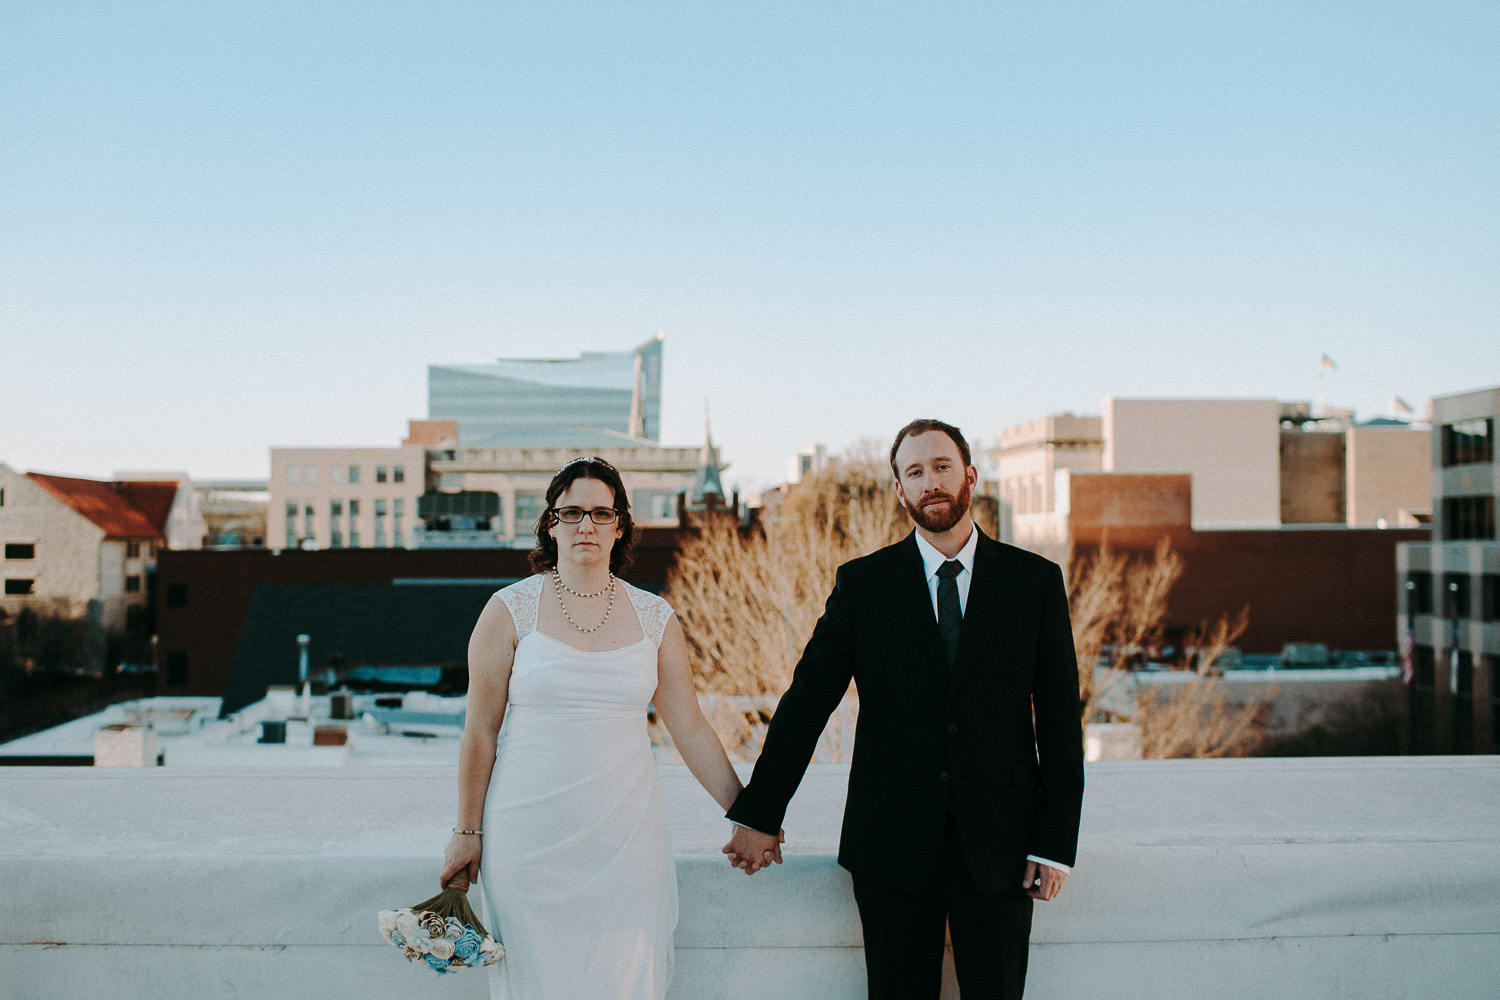 The Bridge Club/ Raleigh, North Carolina Wedding: Amber & Mike